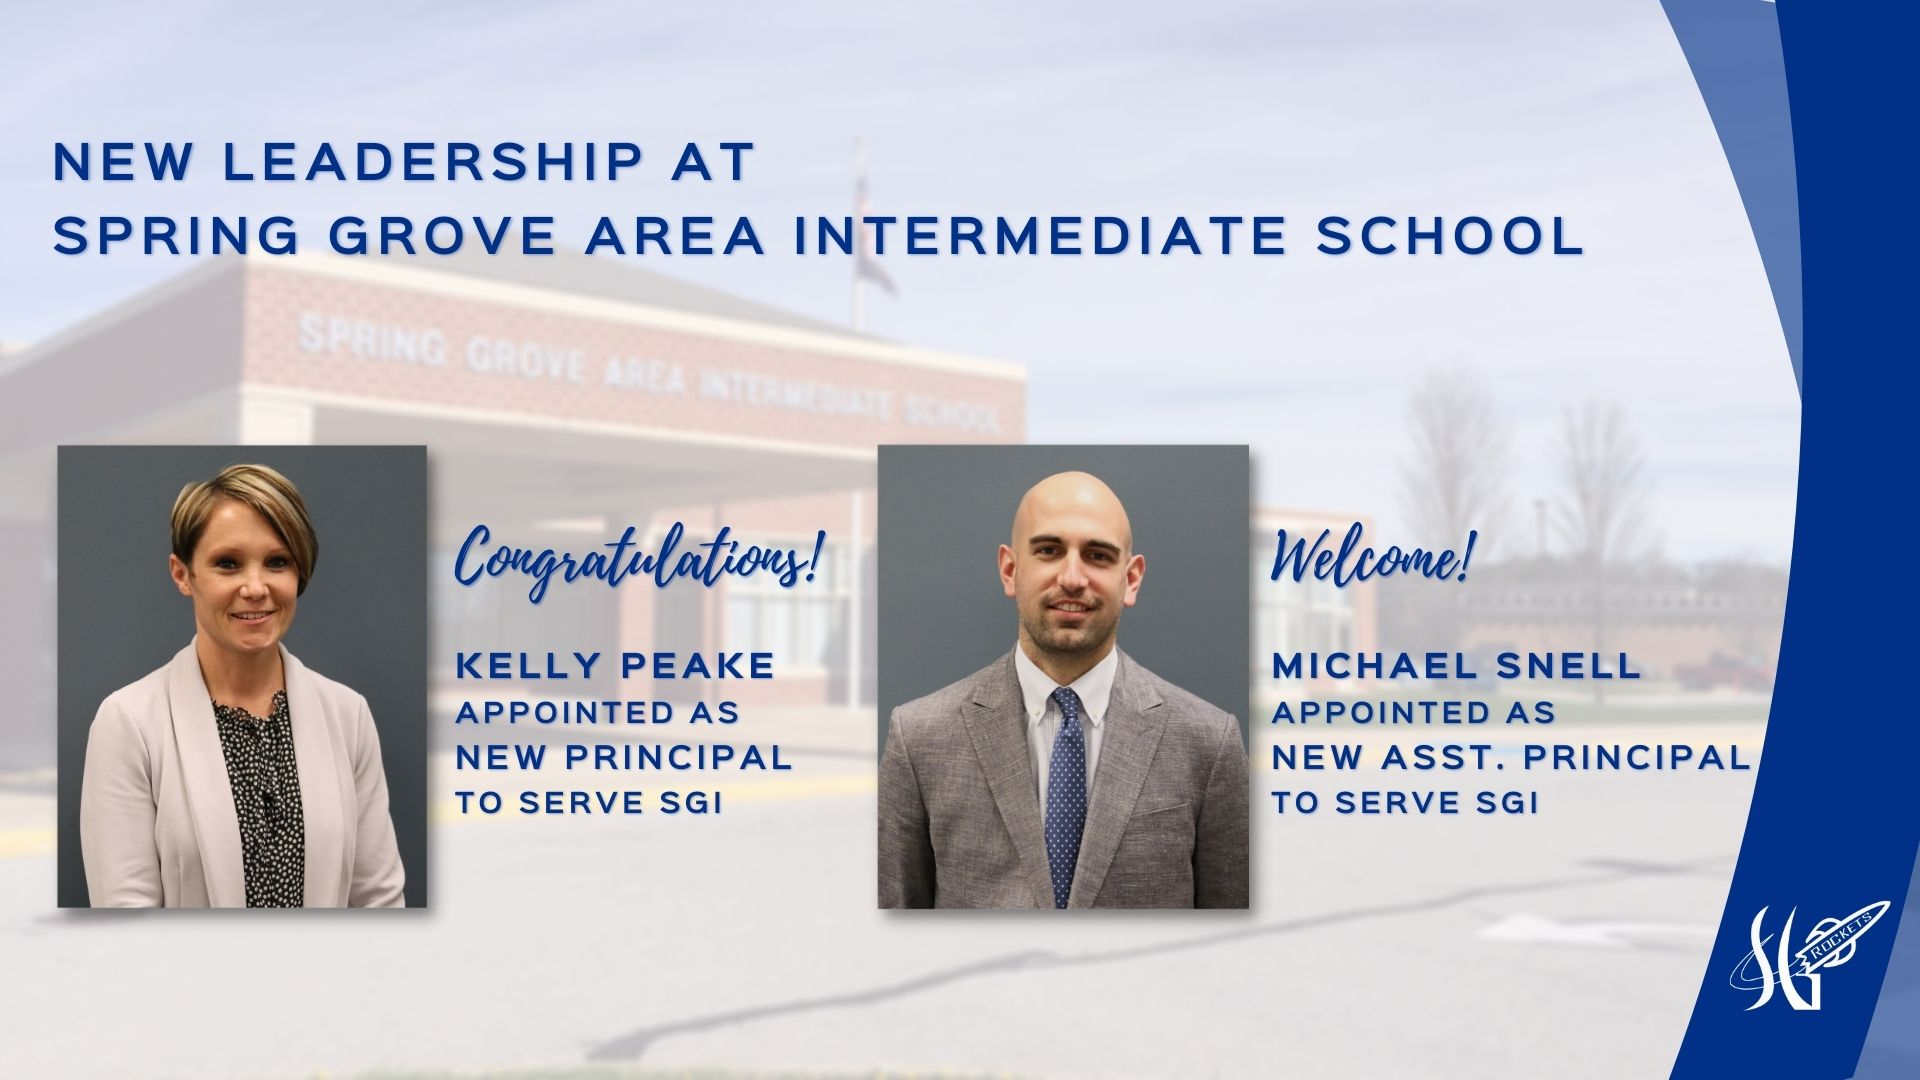 New Leadership at Spring Grove Area Intermediate School